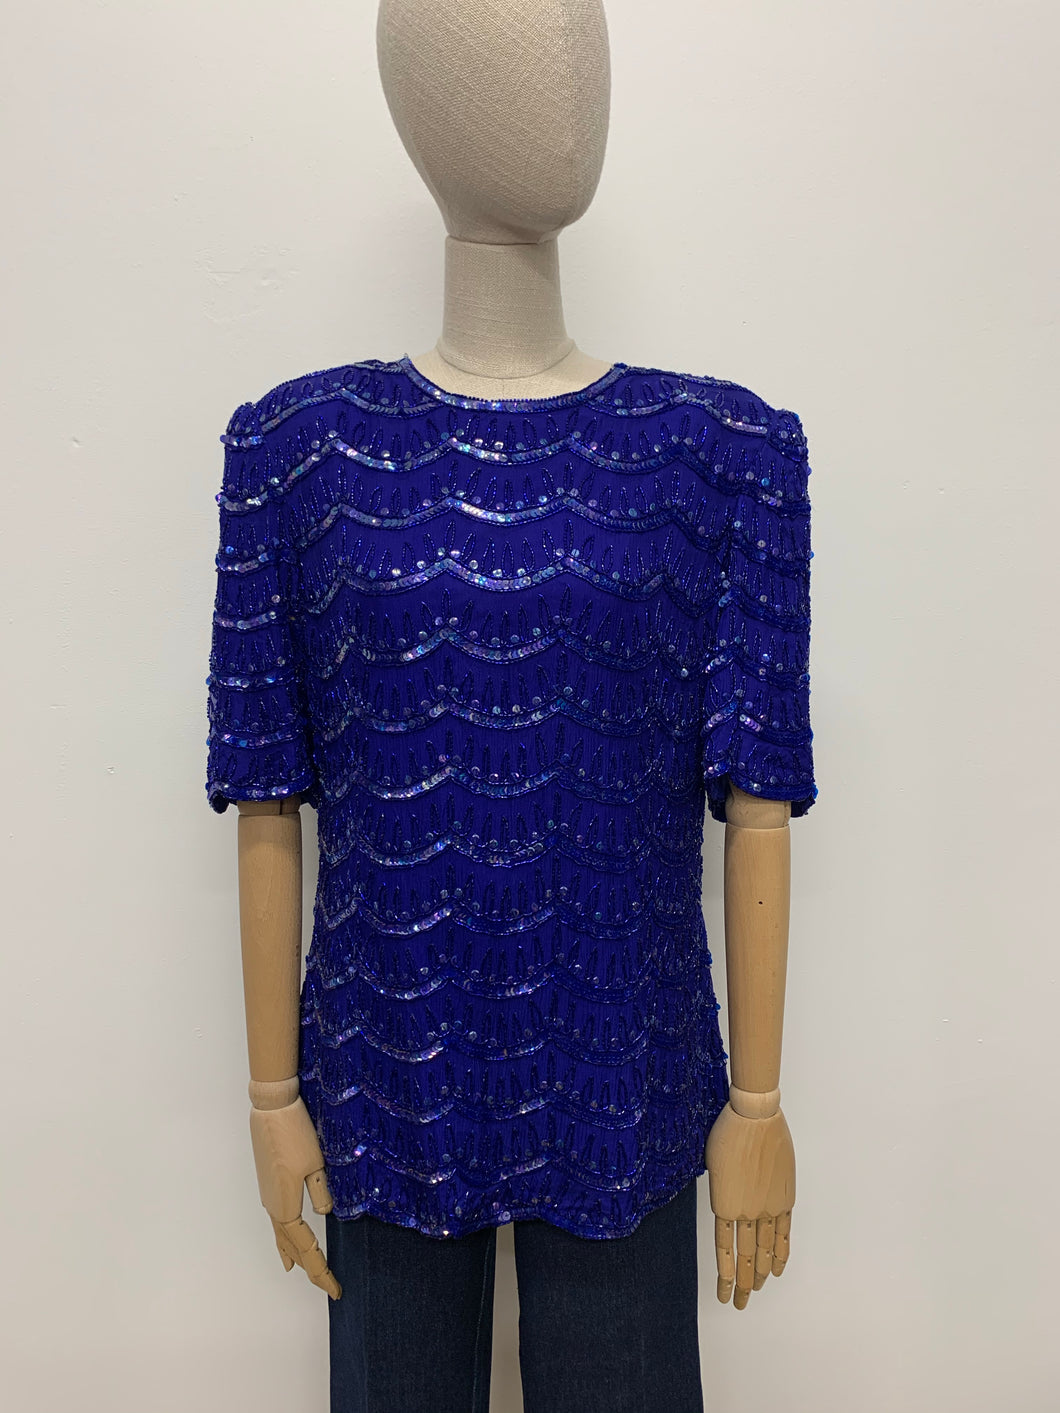 Frank Usher Scallop Beaded Blouse